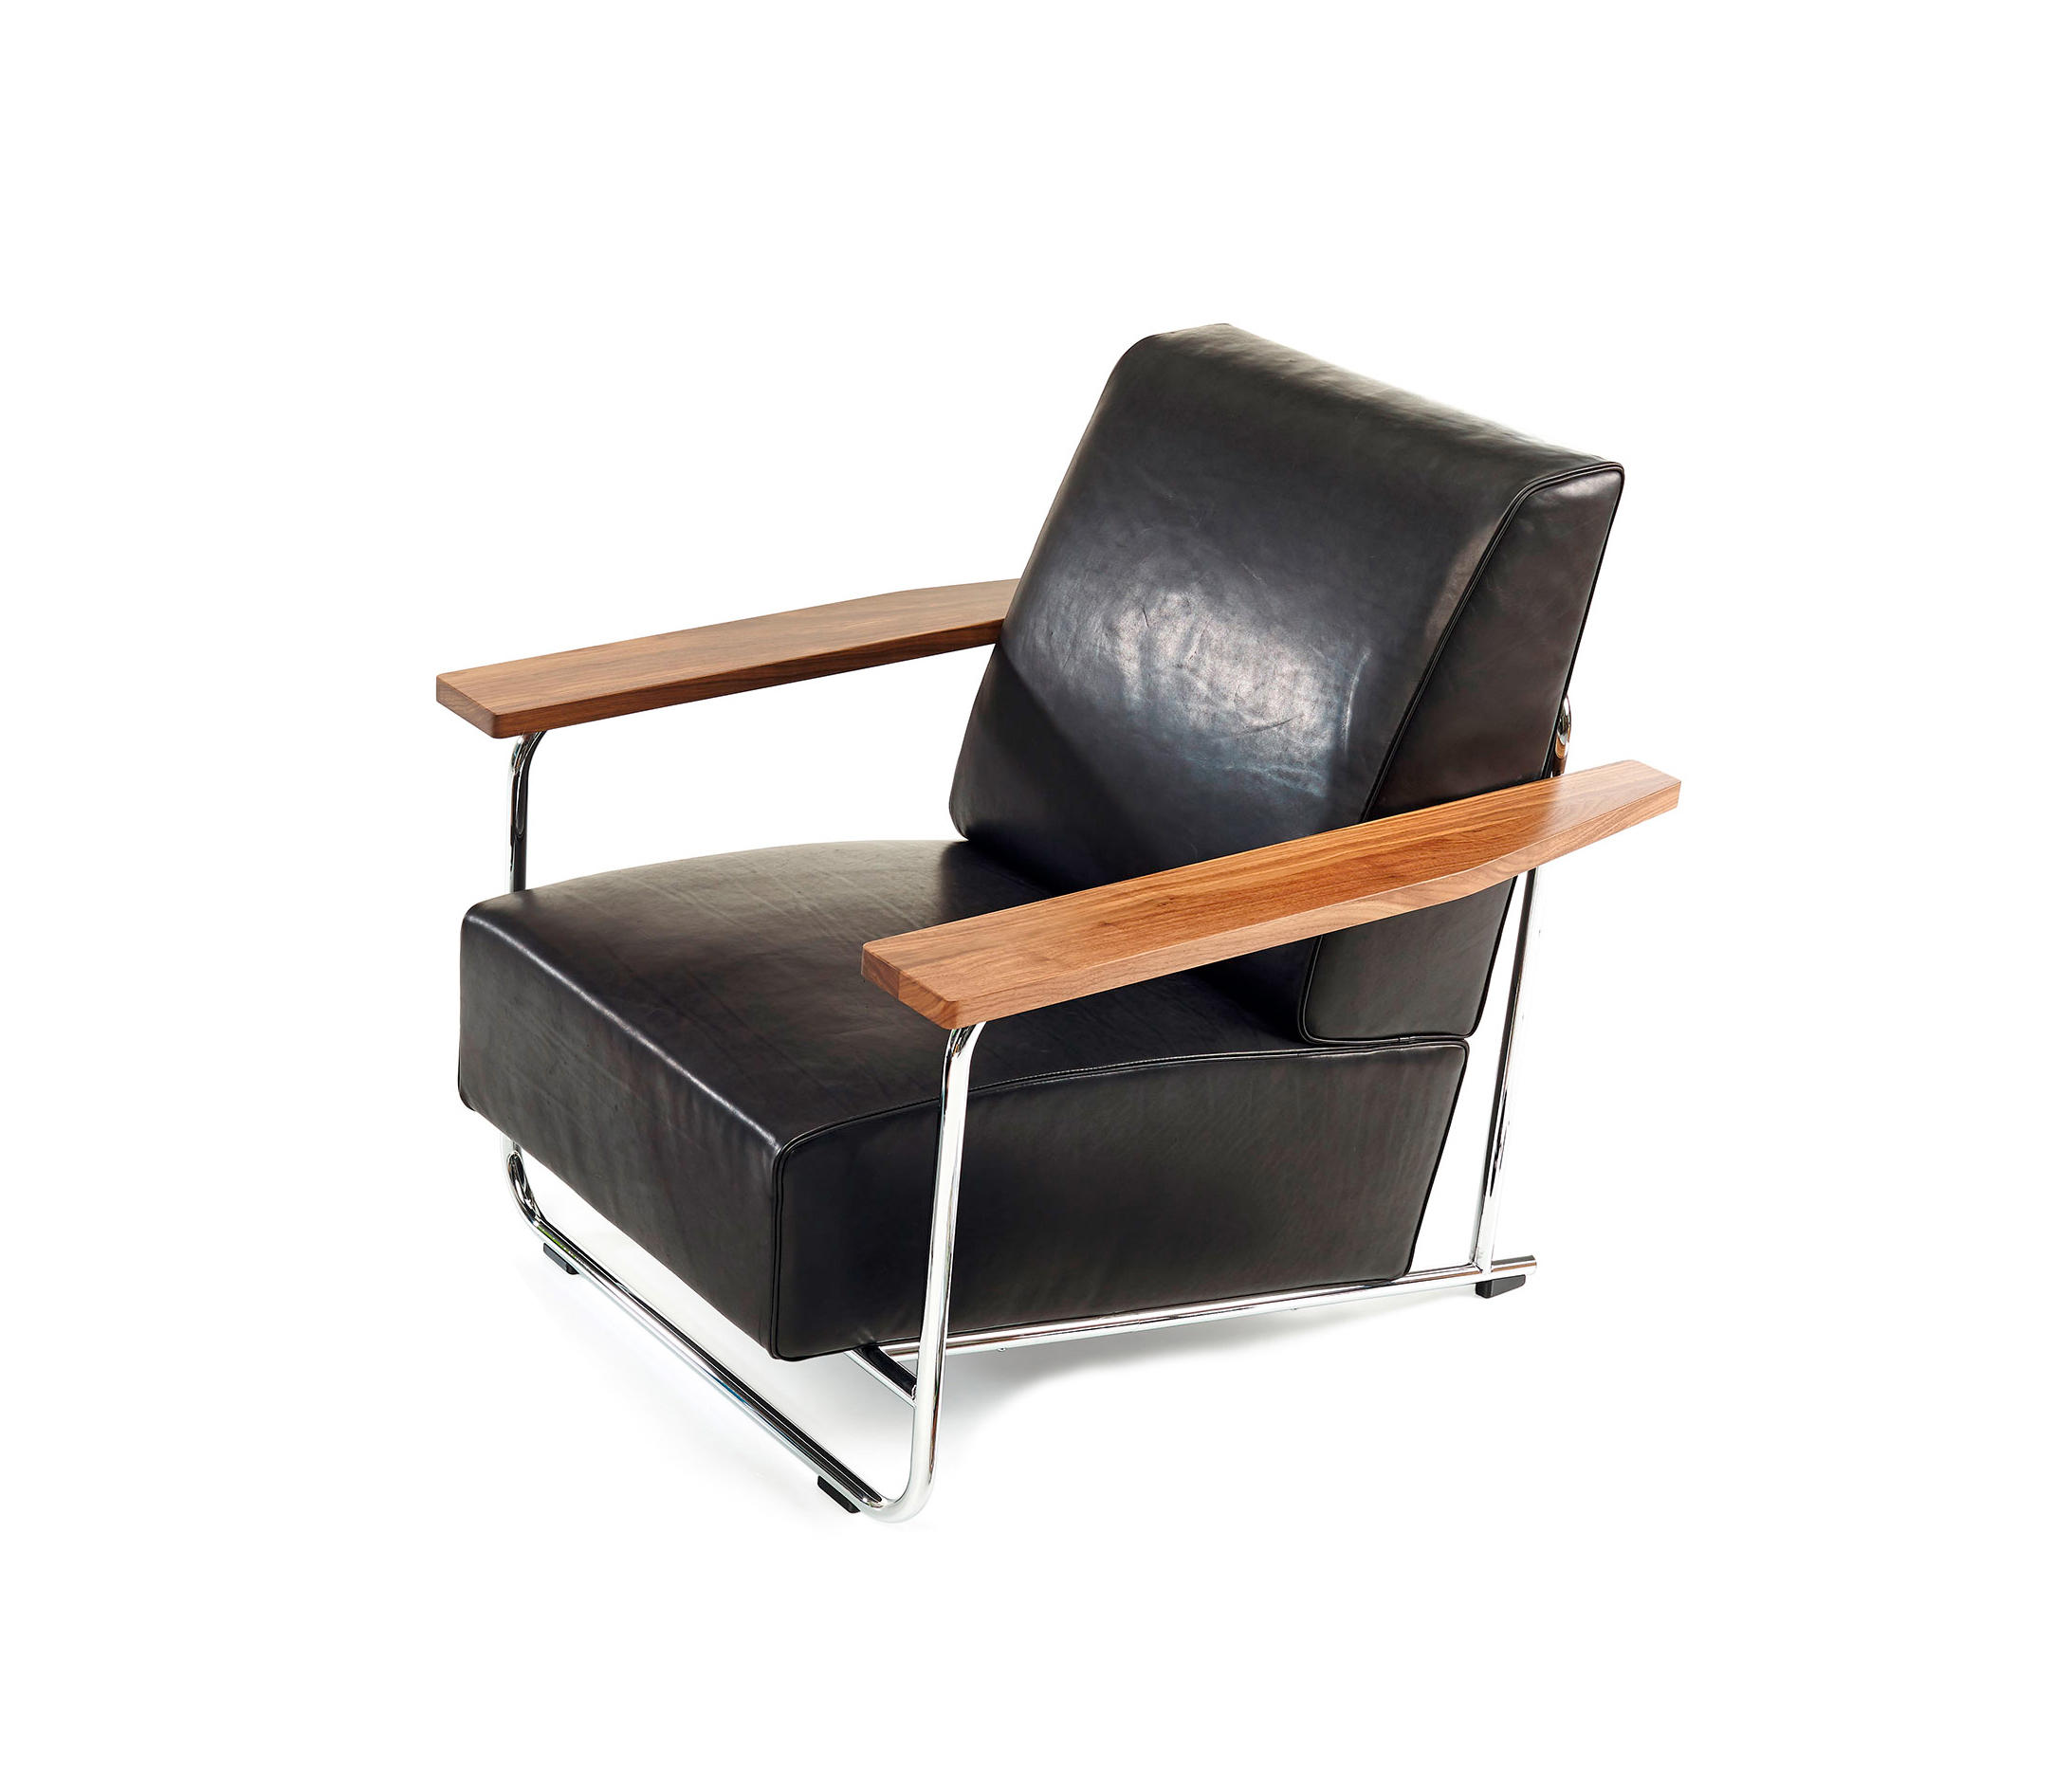 steel lounge chair iron patio glides lovell easy chairs from vs architonic